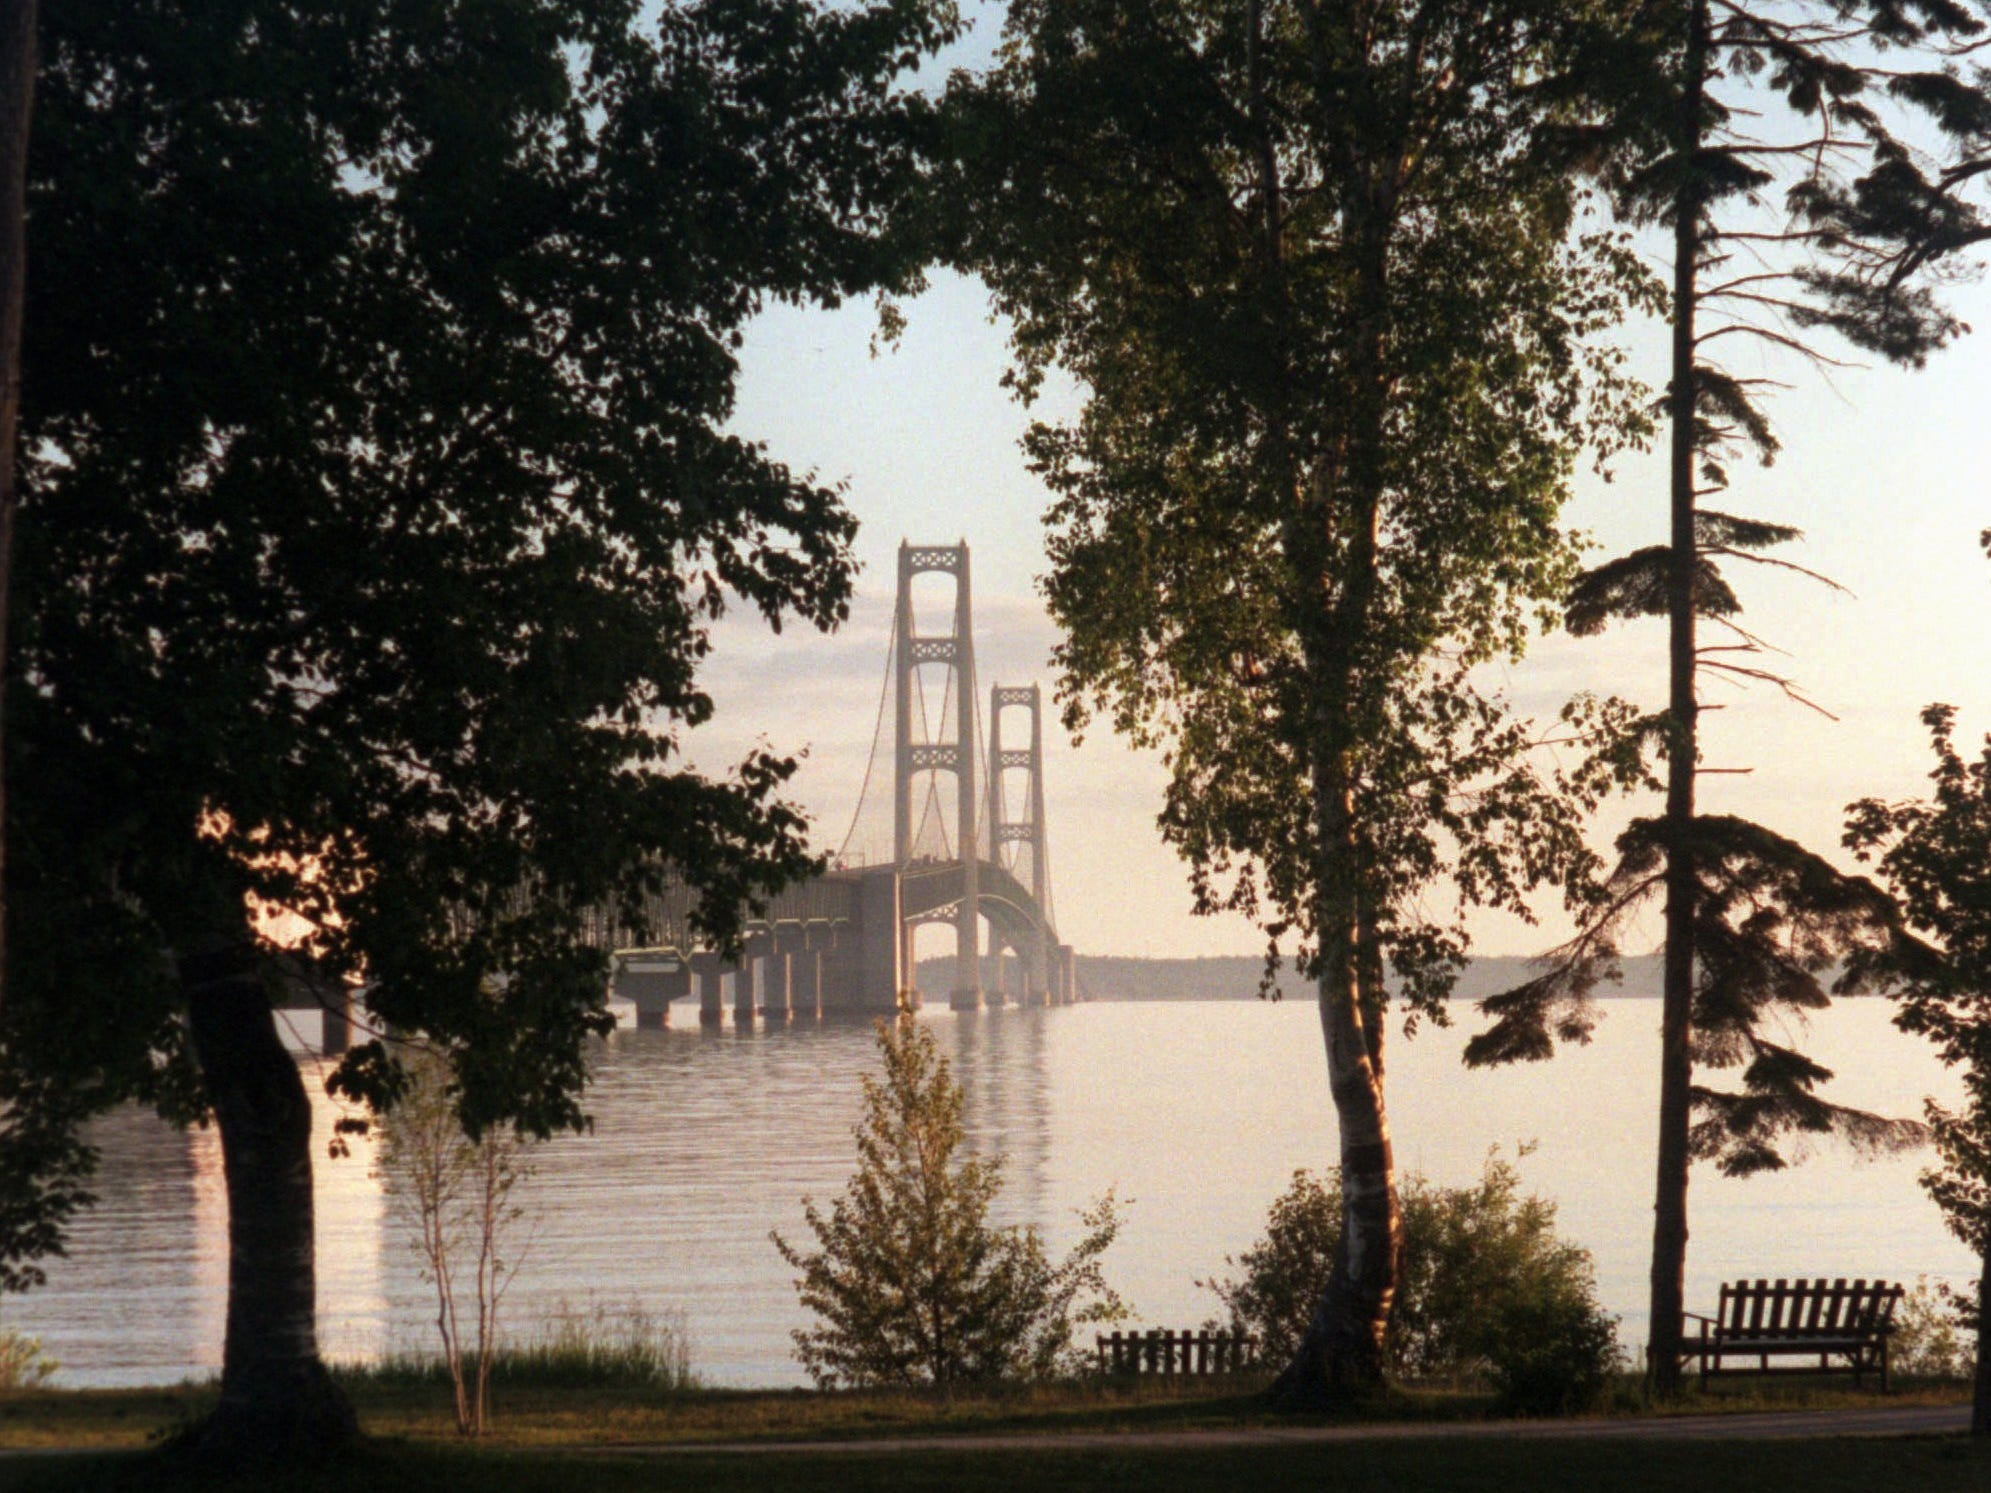 An early morning view of the Mackinac Bridge from Alexander Henry Park in Mackinaw City. Tourism is on the rise in Mackinaw City with added beachside hotels and the new Disney-esque shopping entertainment center called Mackinaw Crossings.